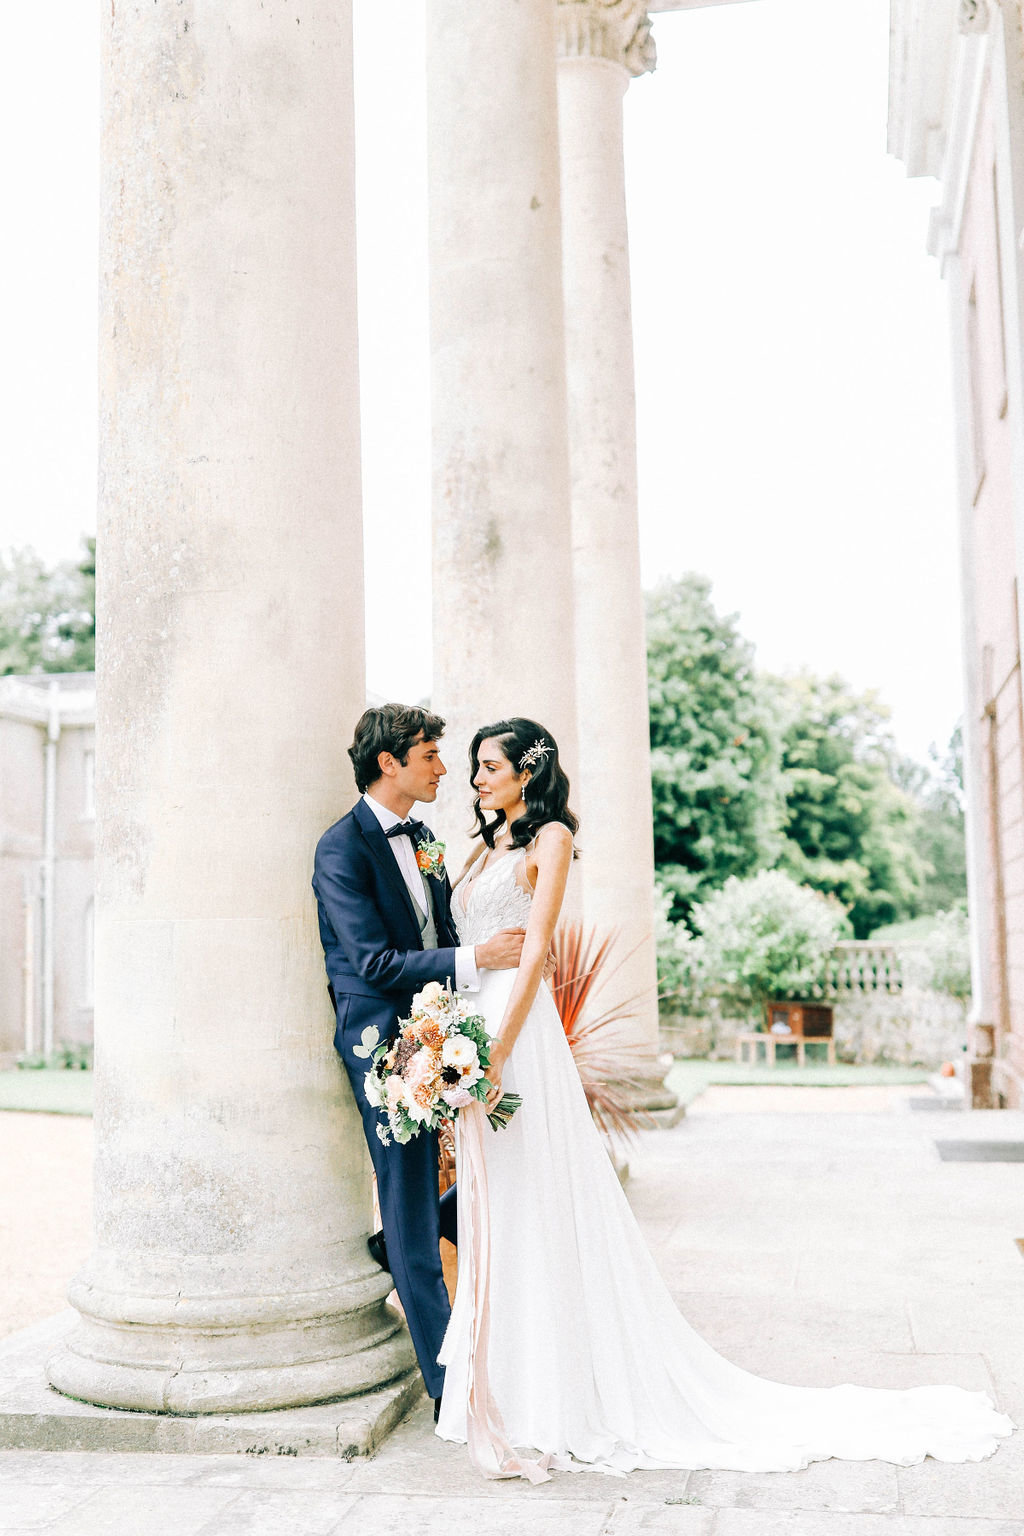 Beautiful Country House Wedding Venue Hampshire, Dorset UK | UK Wedding Planner | Rachel Dalton Weddings